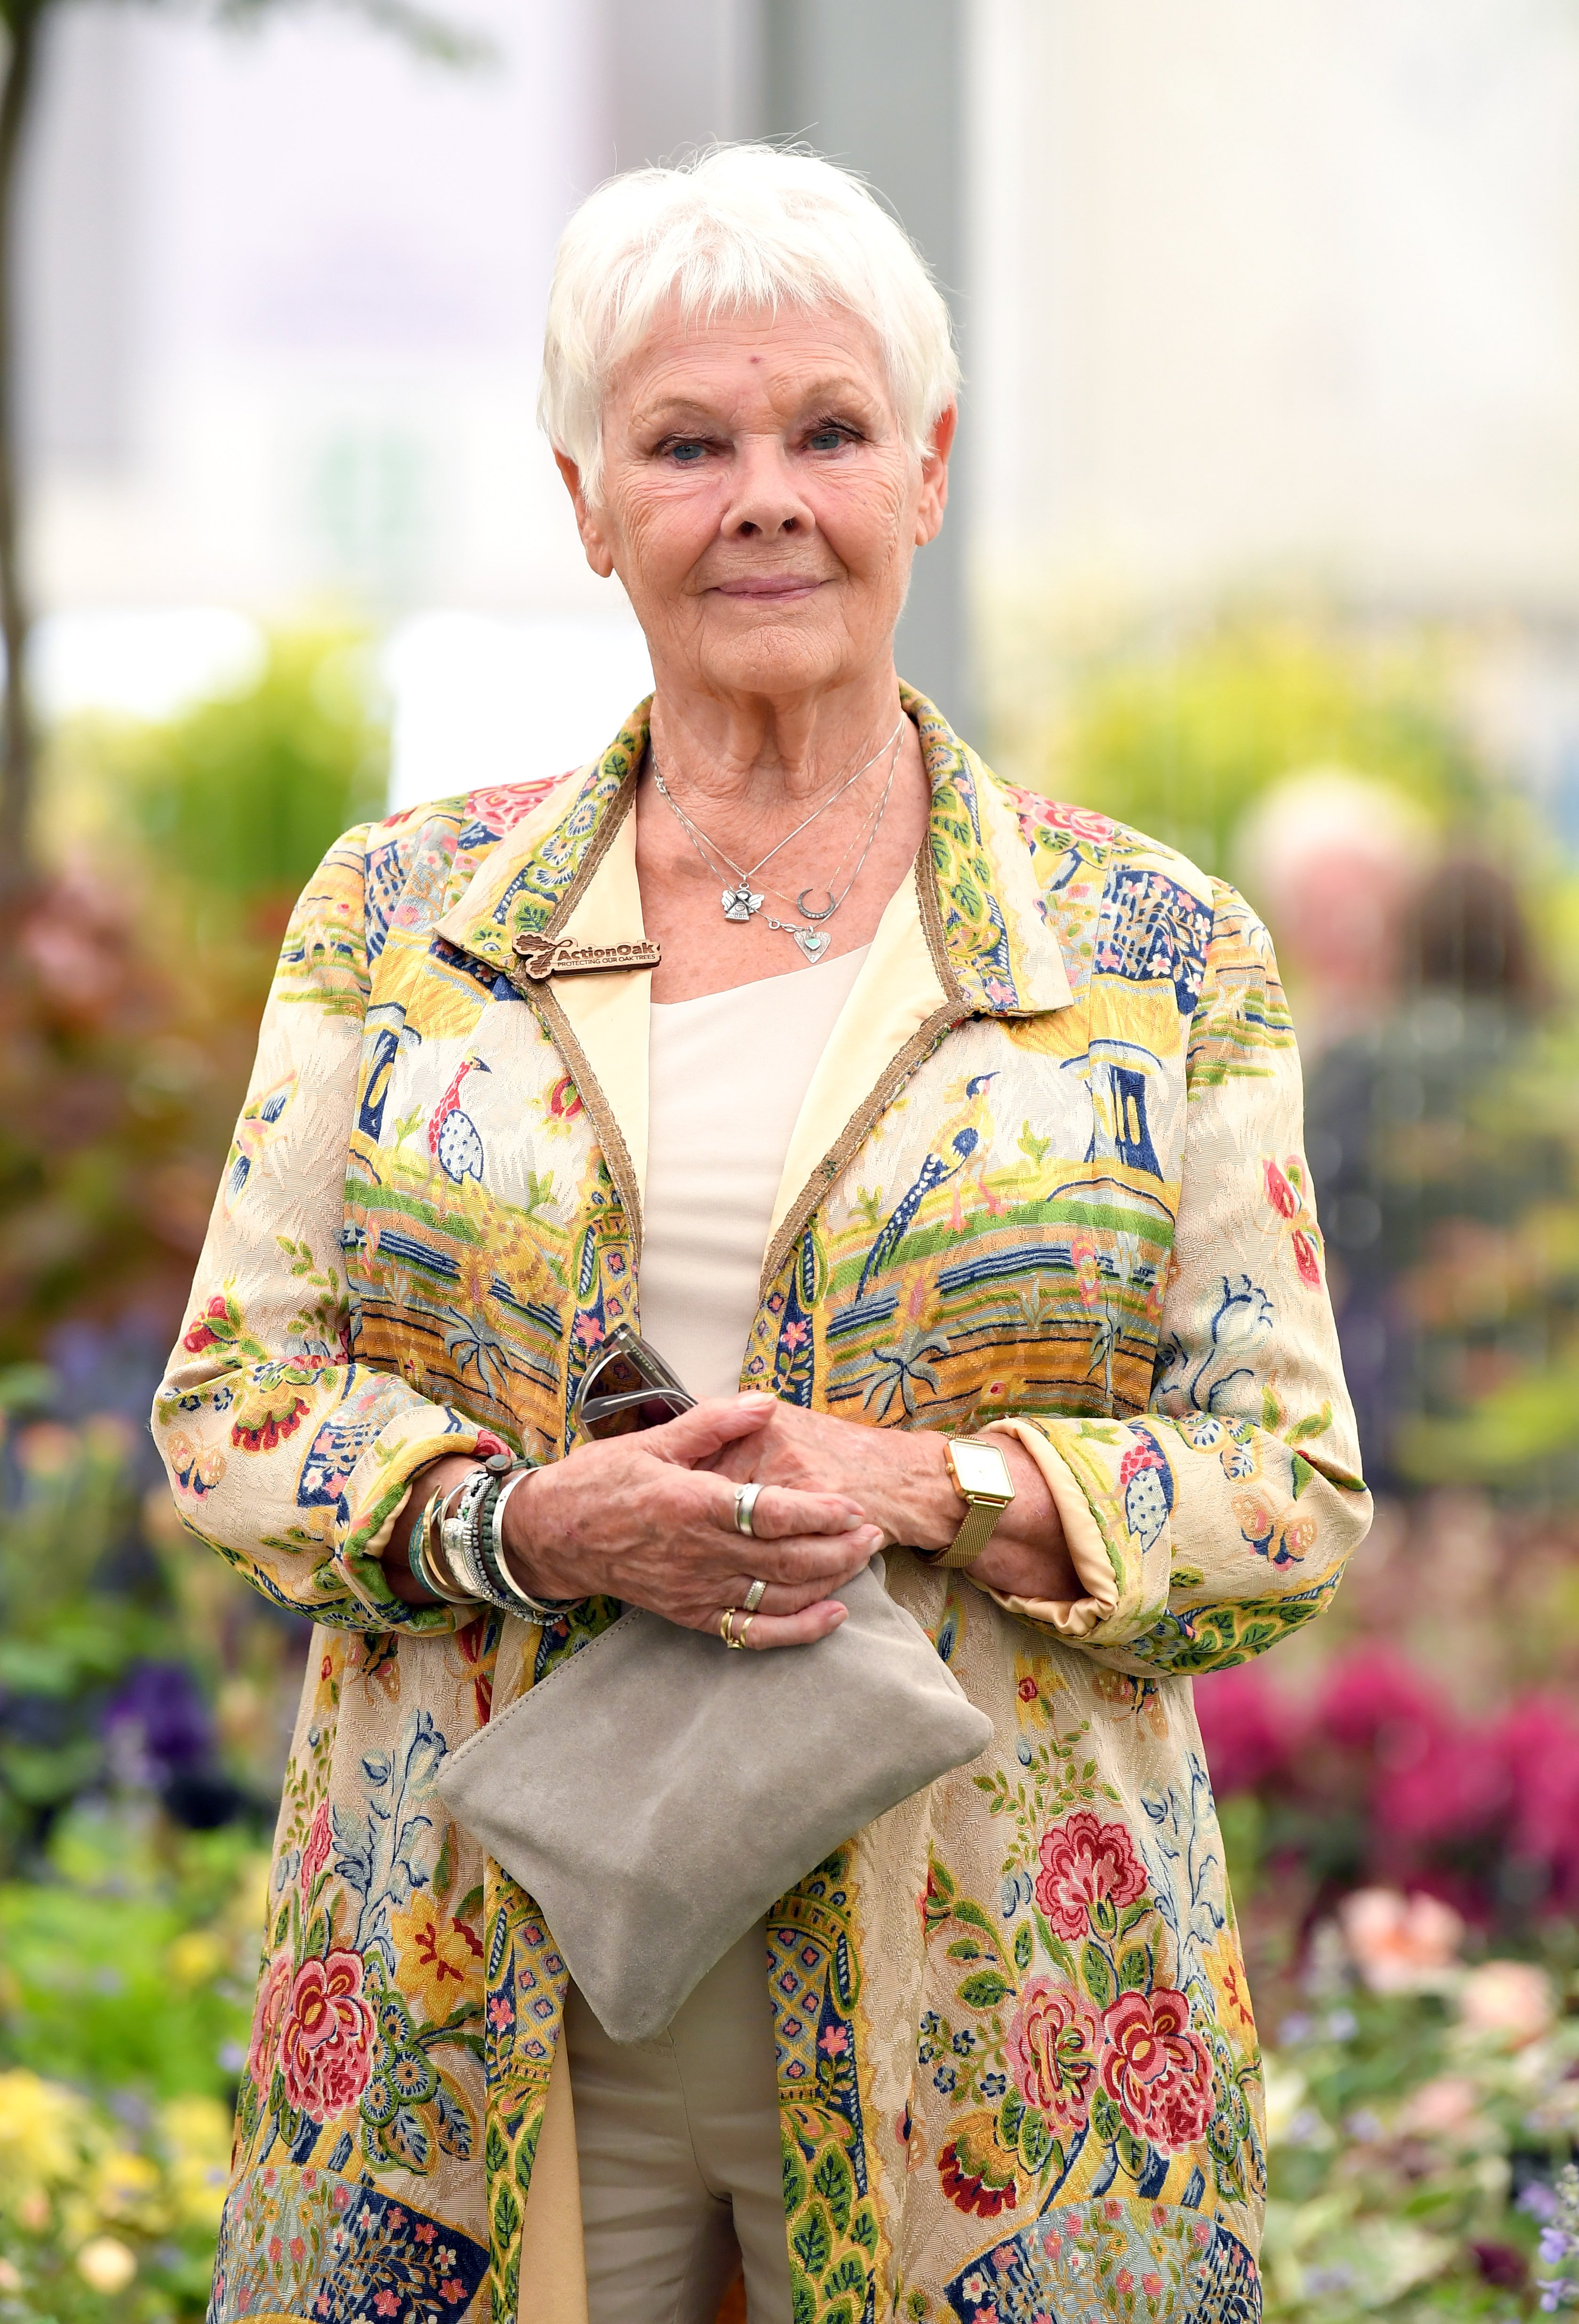 Dame Judi Dench attends the RHS Chelsea Flower Show 2019 press day at Chelsea Flower Show on May 20, 2019 in London, England | Photo: Getty Images